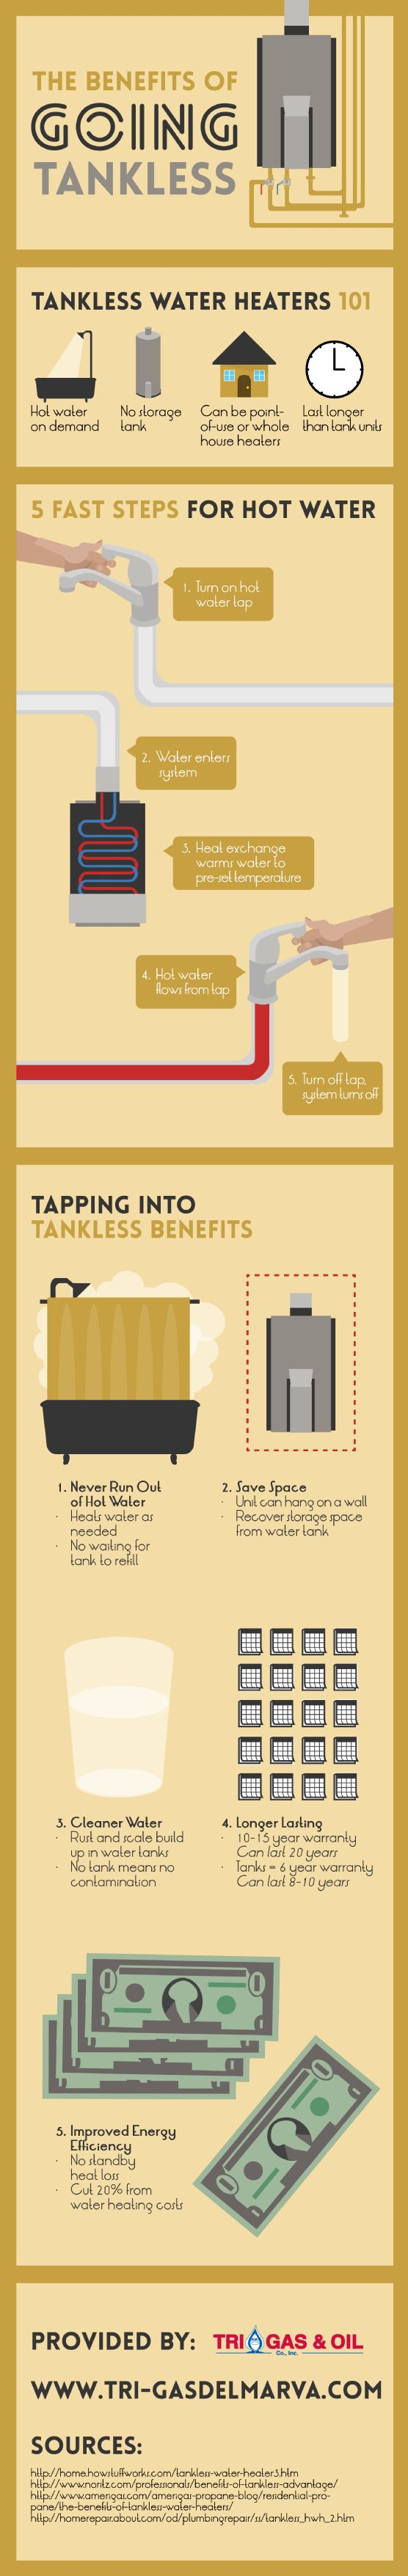 You never have to run out of hot water when you invest in a tankless water heater! This option heats water as needed, meaning there is no waiting for a tank to refill. Discover more details by taking a look at this infographic from a gas company in Delmarva.